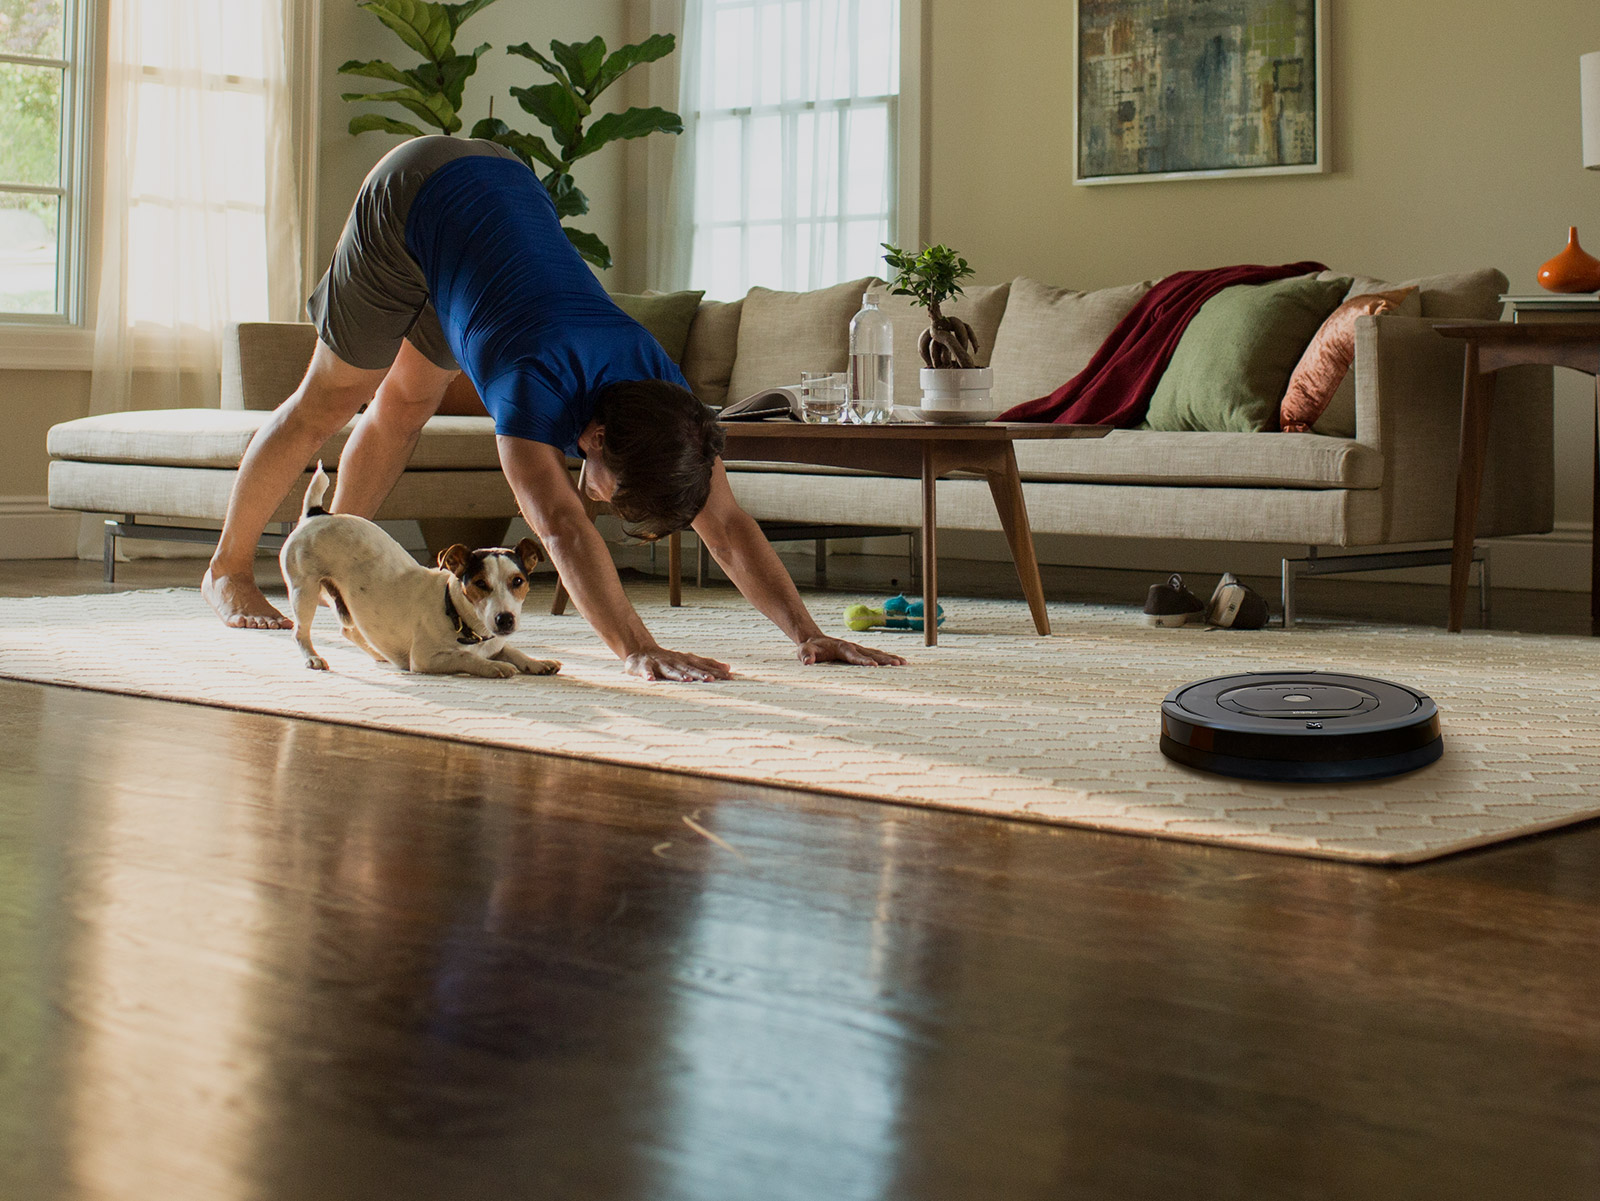 Robotic Cleaner Make You a Comfortable Life